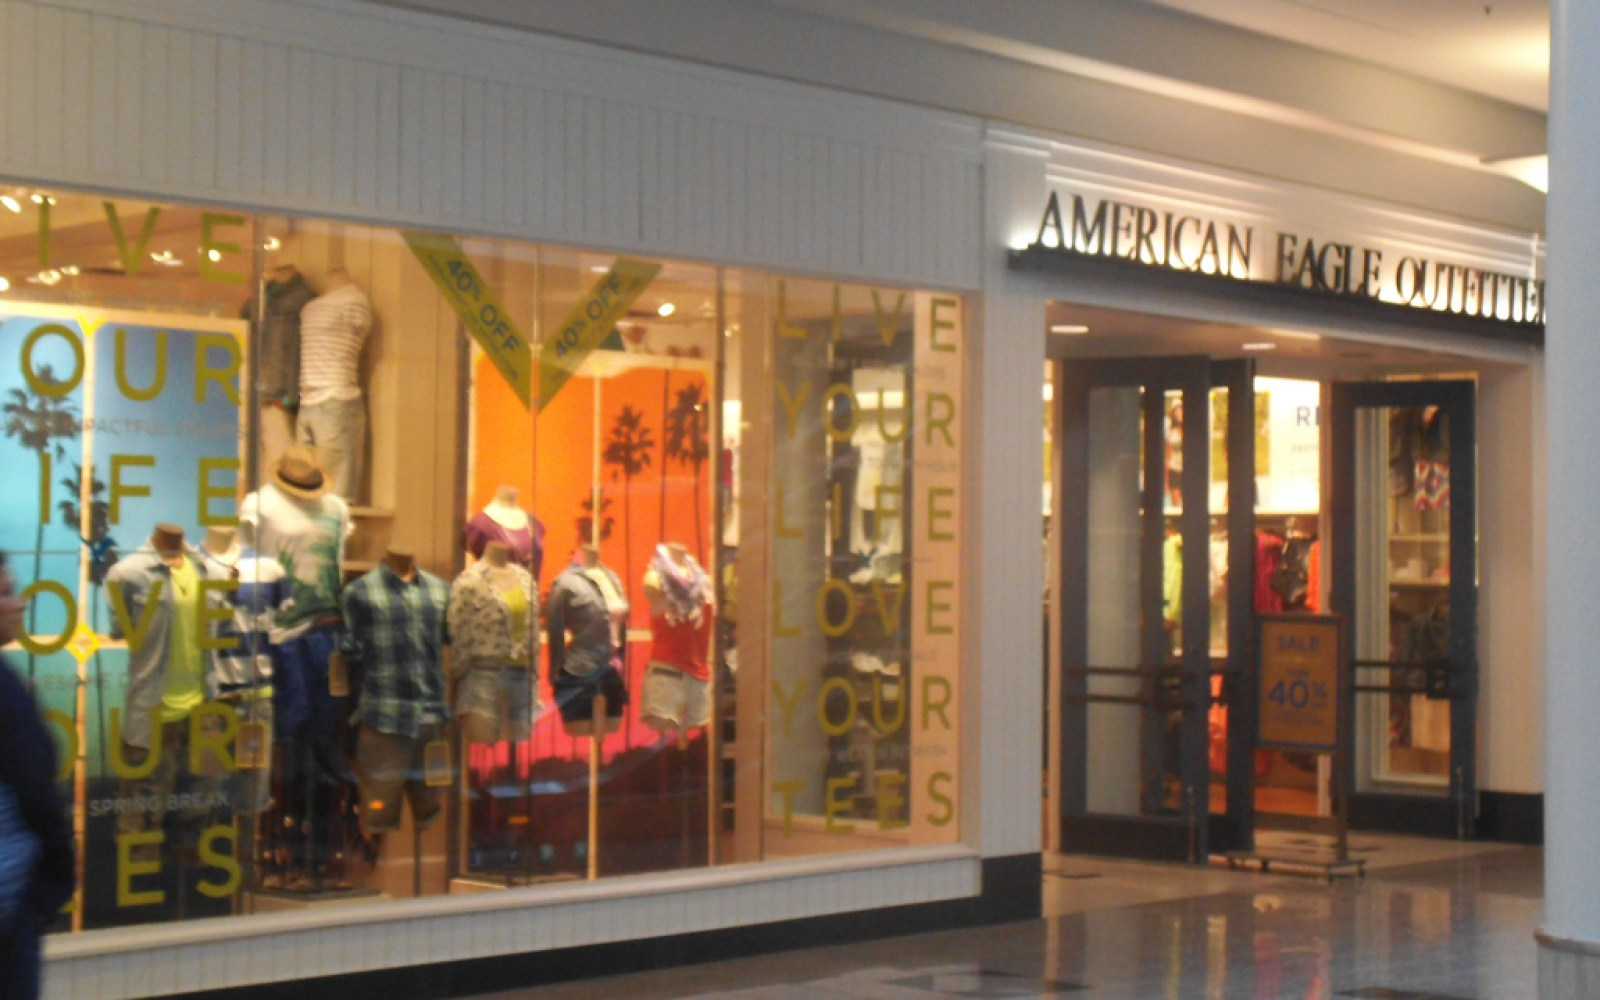 Shopkick testing iBeacons in 100 American Eagle locations in largest roll out yet